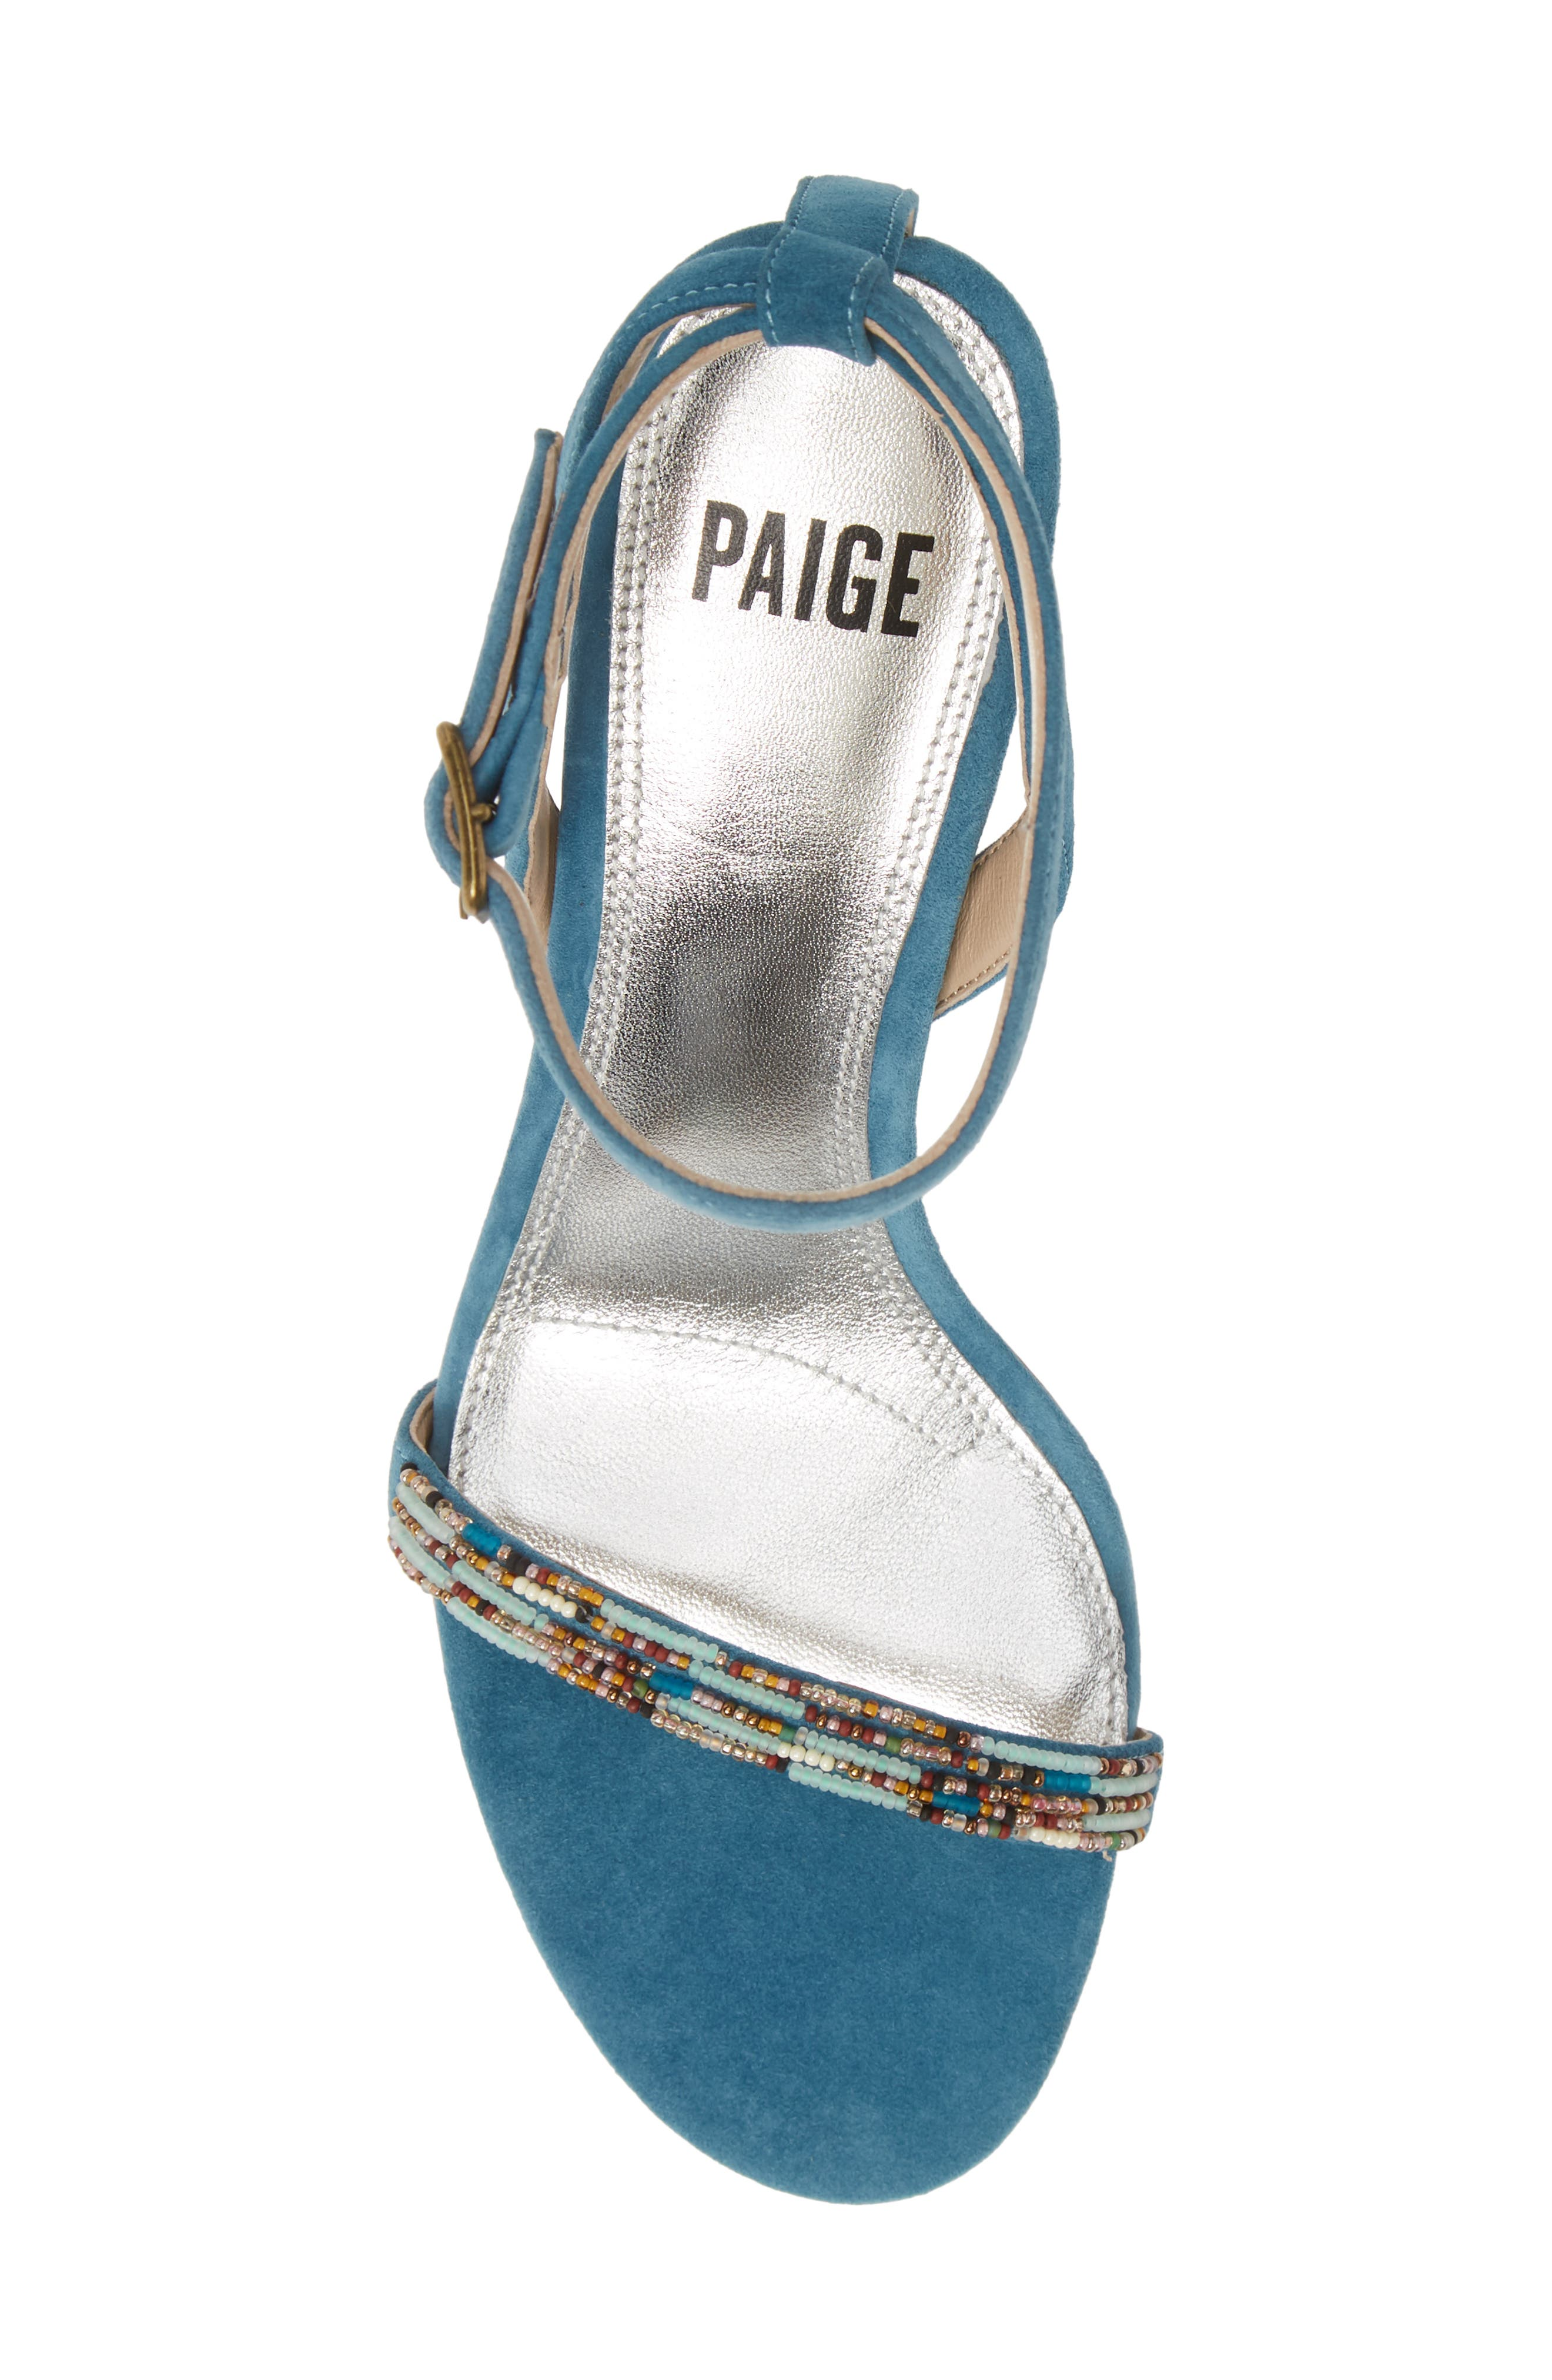 PAIGE, Gabriella Beaded Sandal, Alternate thumbnail 5, color, BLUE